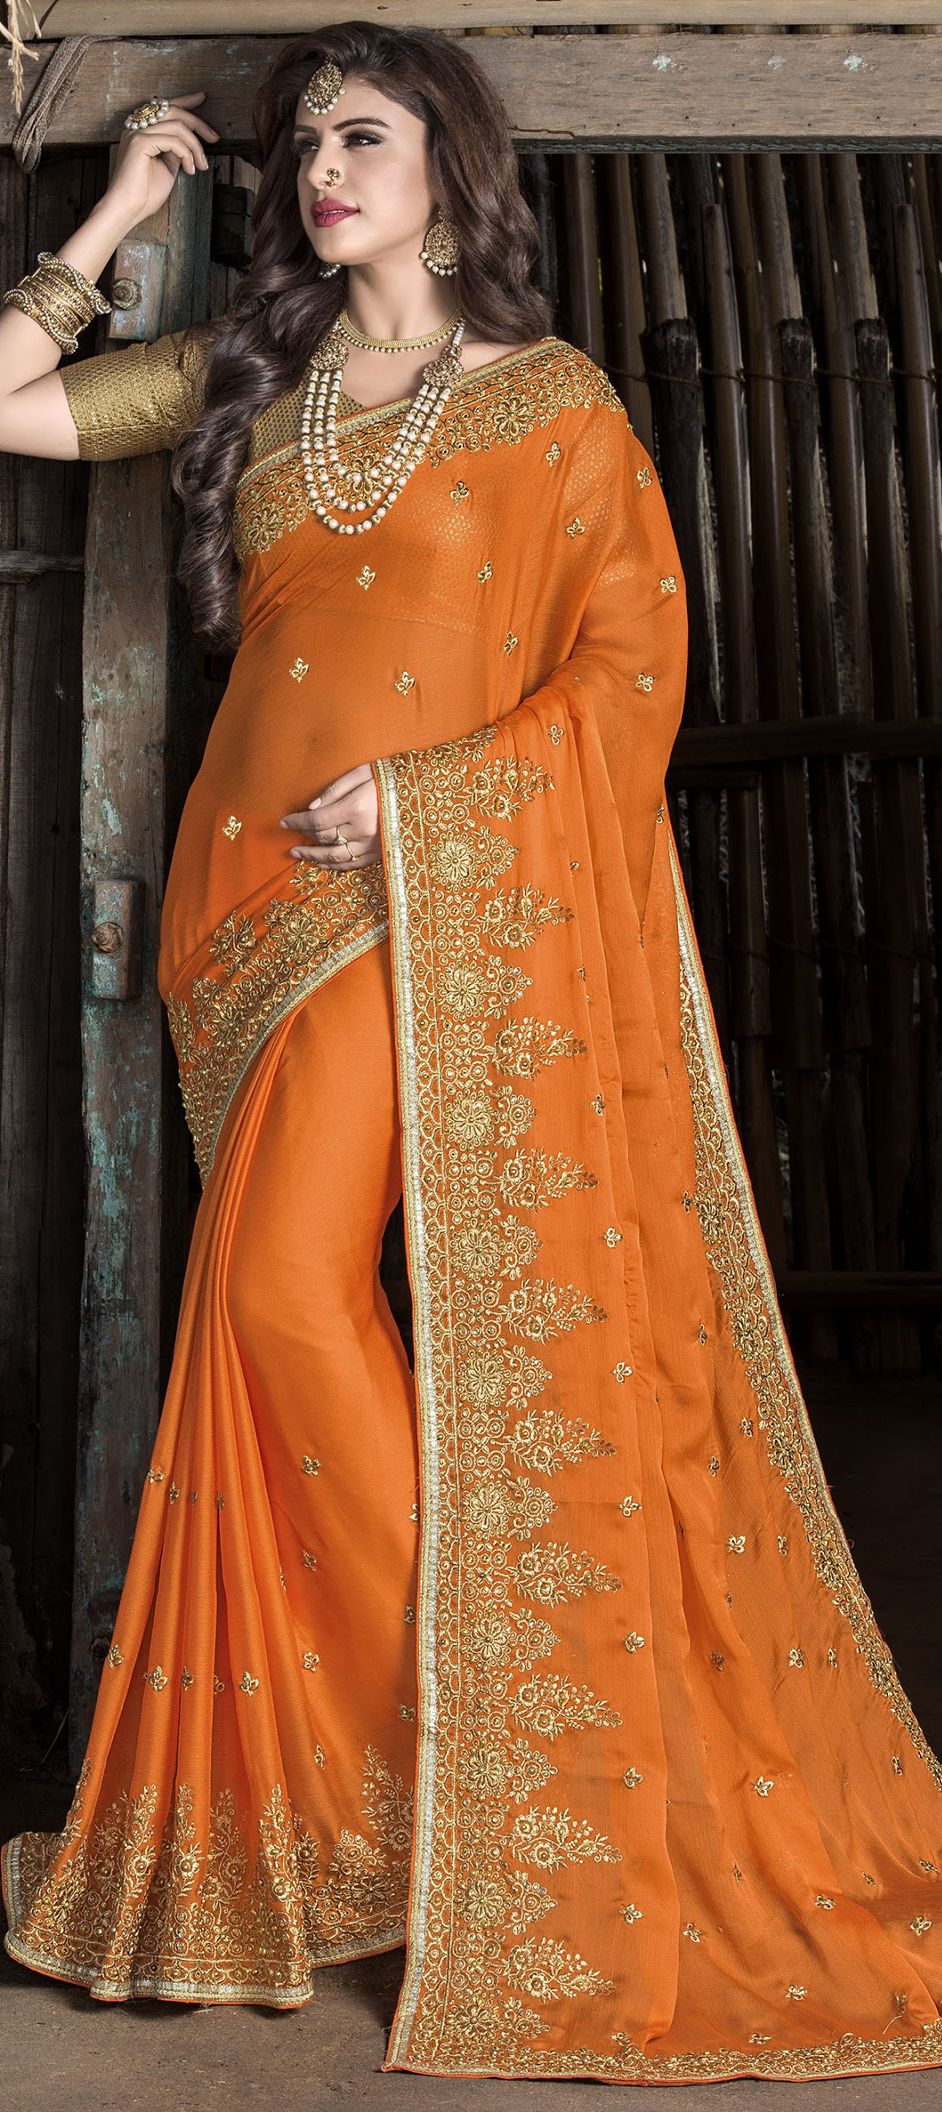 ddf329a525 739021 Orange color family Embroidered Sarees, Party Wear Sarees in Chiffon  fabric with Lace, Machine Embroidery, Stone, Thread, Zari work with  matching ...